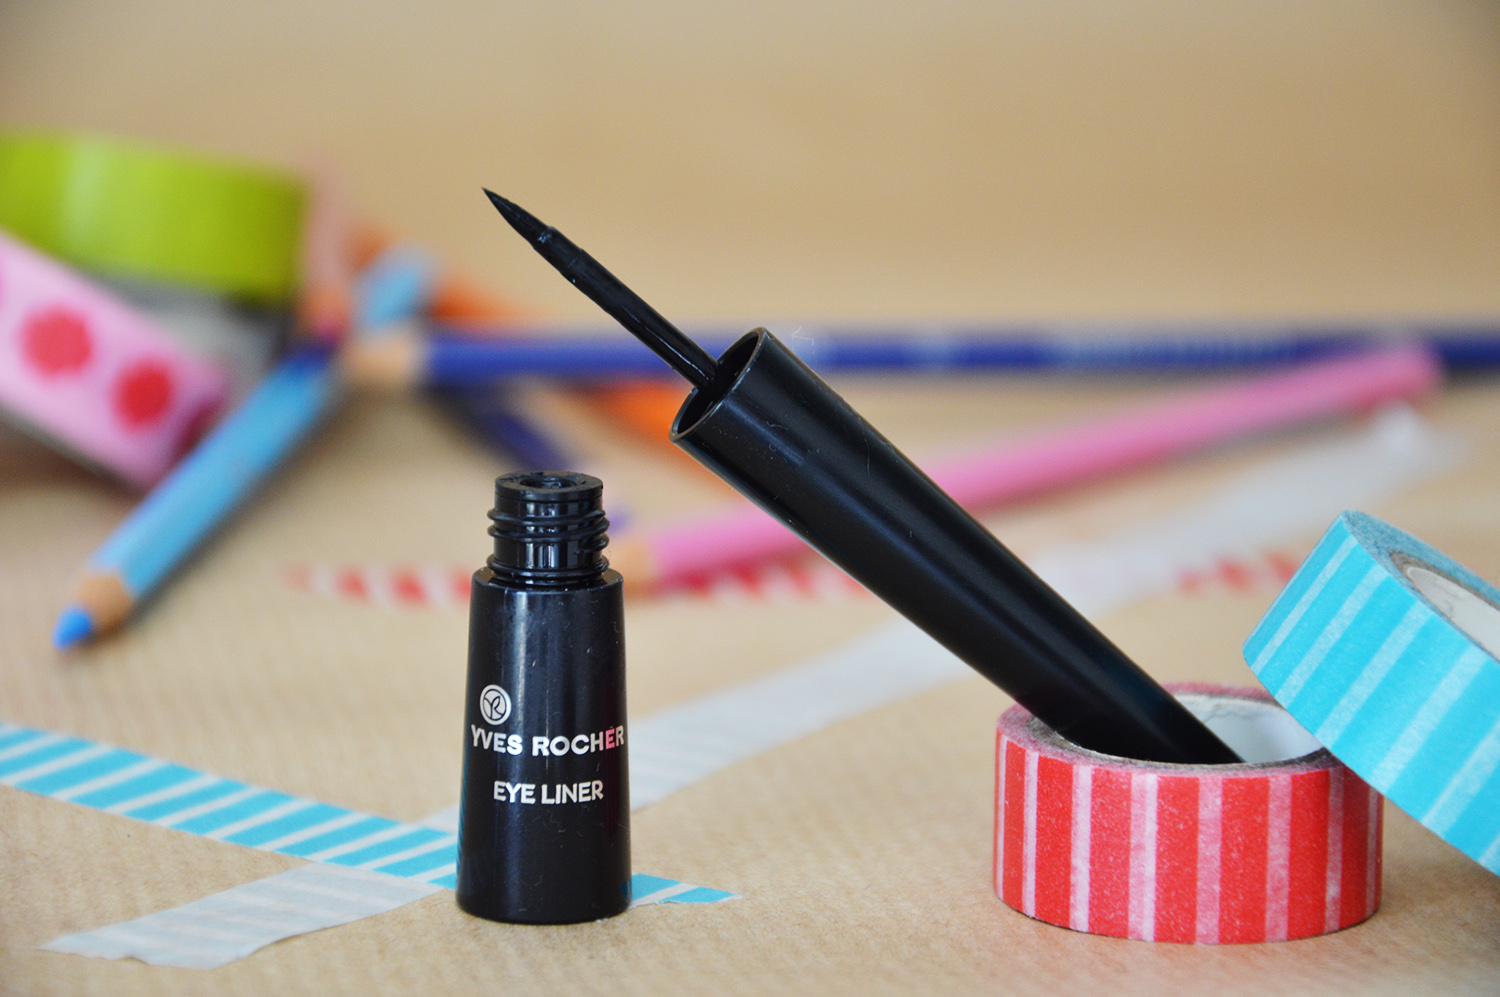 advance-your-style.de, Let's Talk About Beauty, Blogger Reihe, Beauty Tipps, Summer Edition, Yves Rocher Eyeliner schwarz